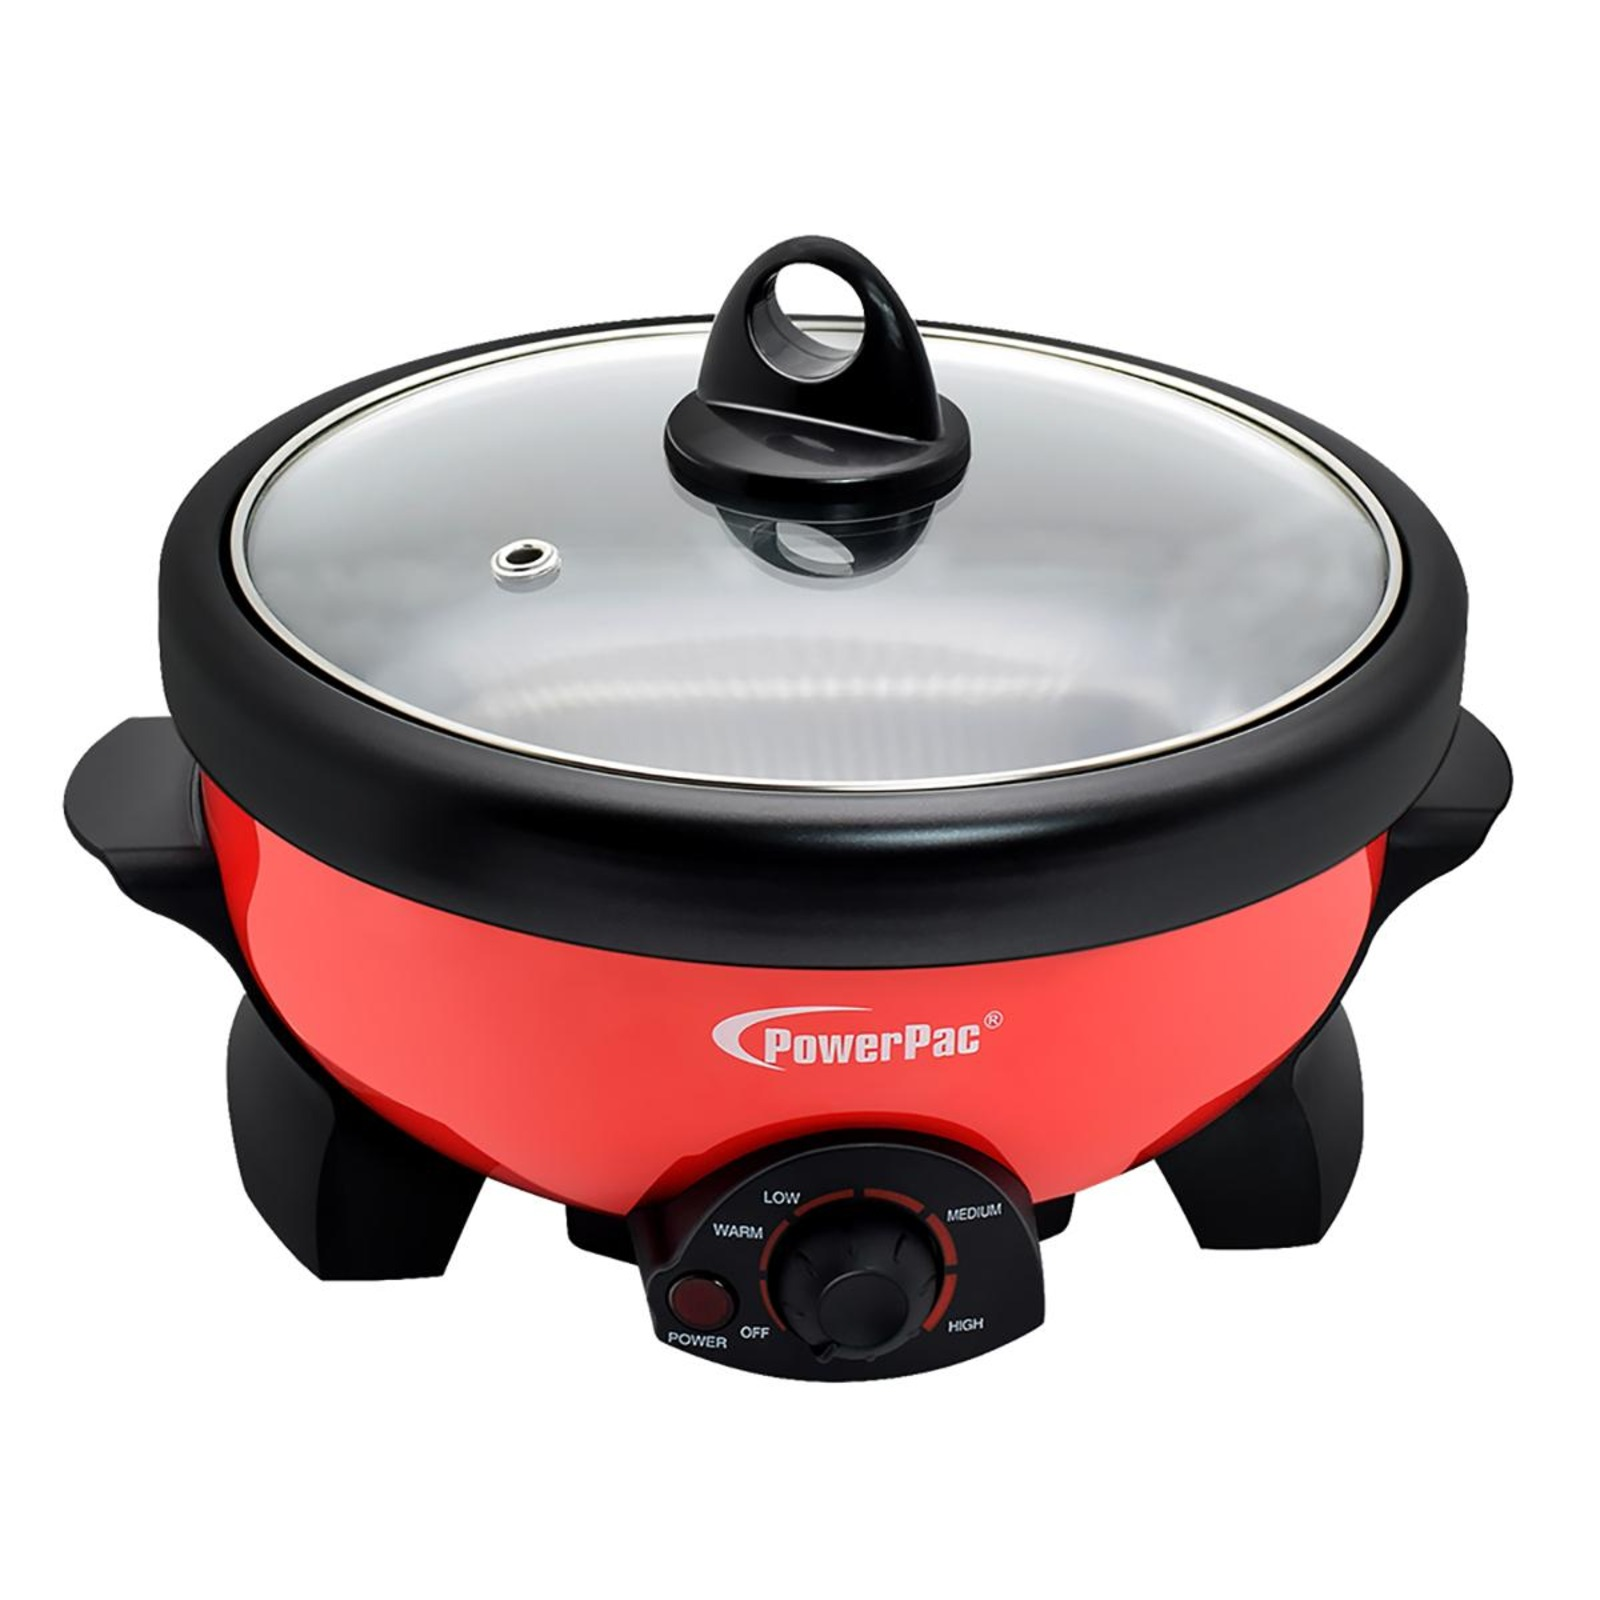 PowerPac 2L 2in1 Multi Cooker Steamboat Hot Pot PPMC181